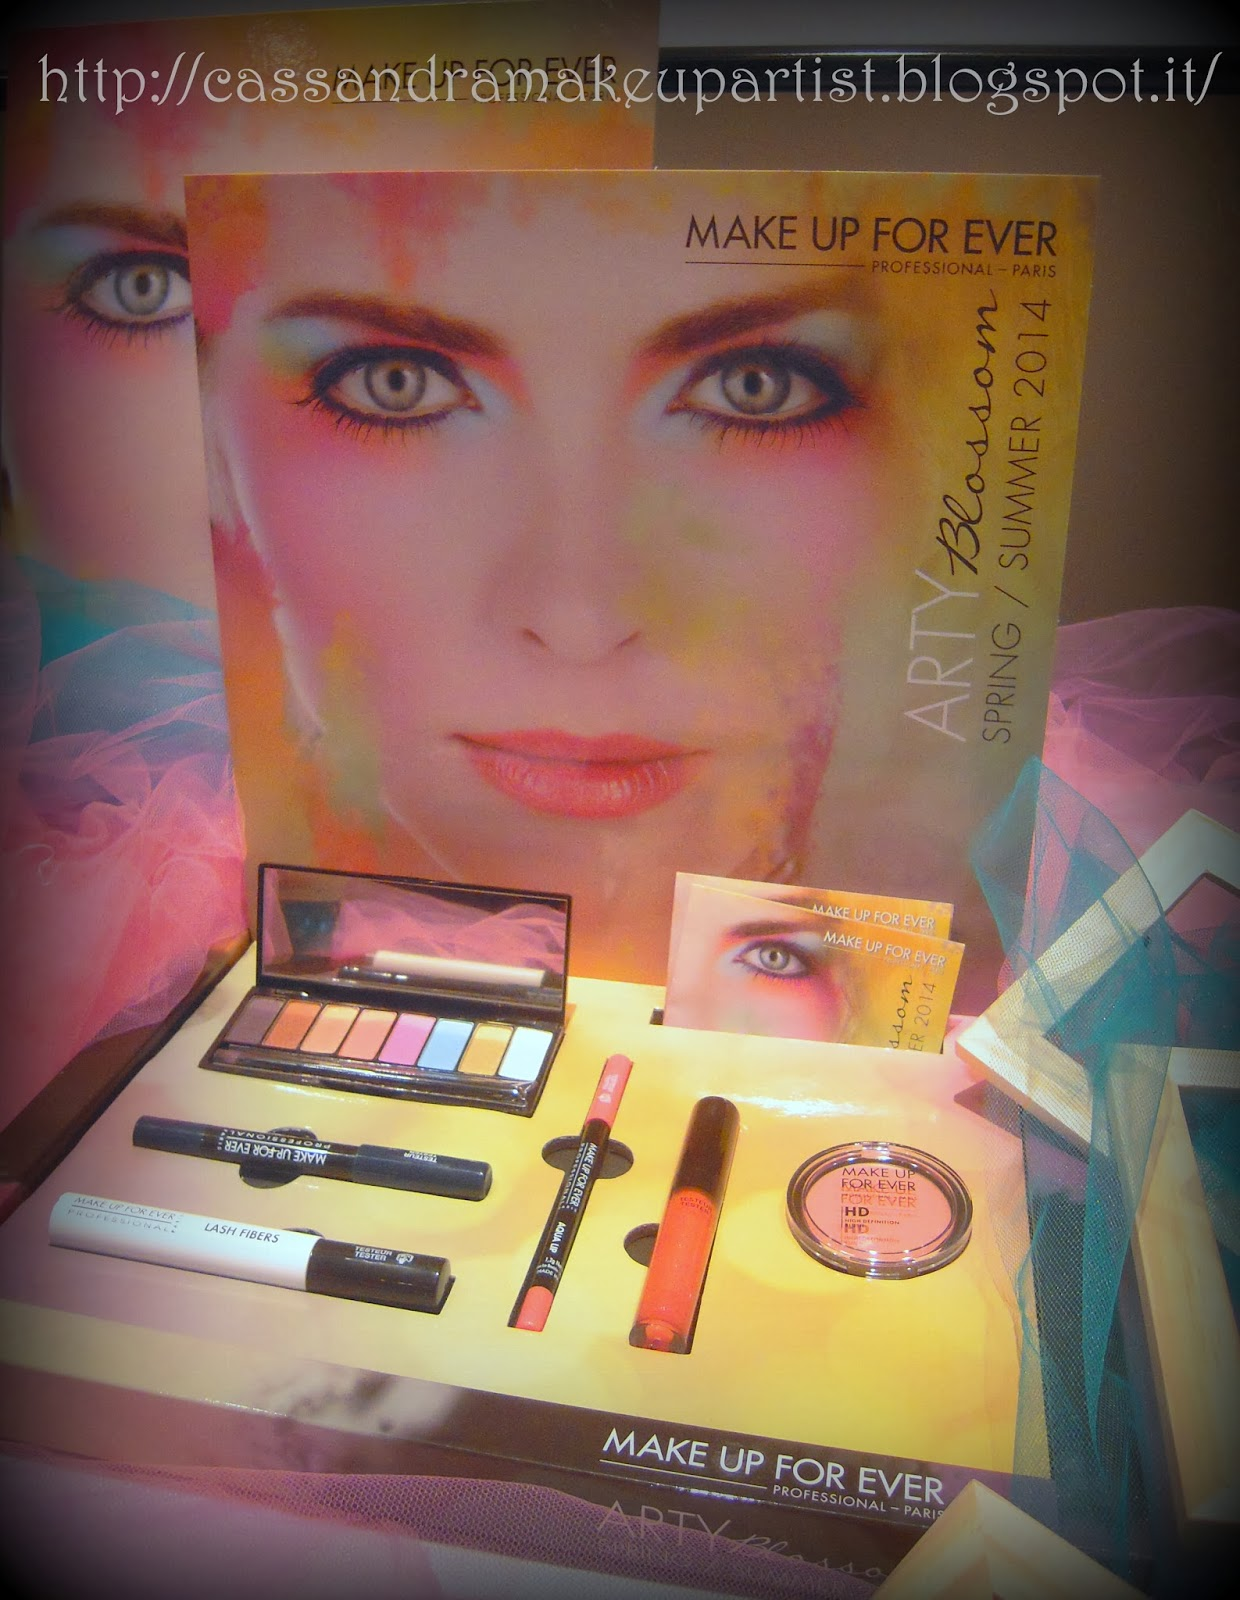 MAKE UP FOR EVER - ARTY BLOSSOM - presentazione new nuovo look primavera estate spring summer ss 2014 - nuova HD pressed POWDER - nuovo HD compact BLUSH - AQUA MATIC - review recensione - la truccheria bologna - rouge artist palette